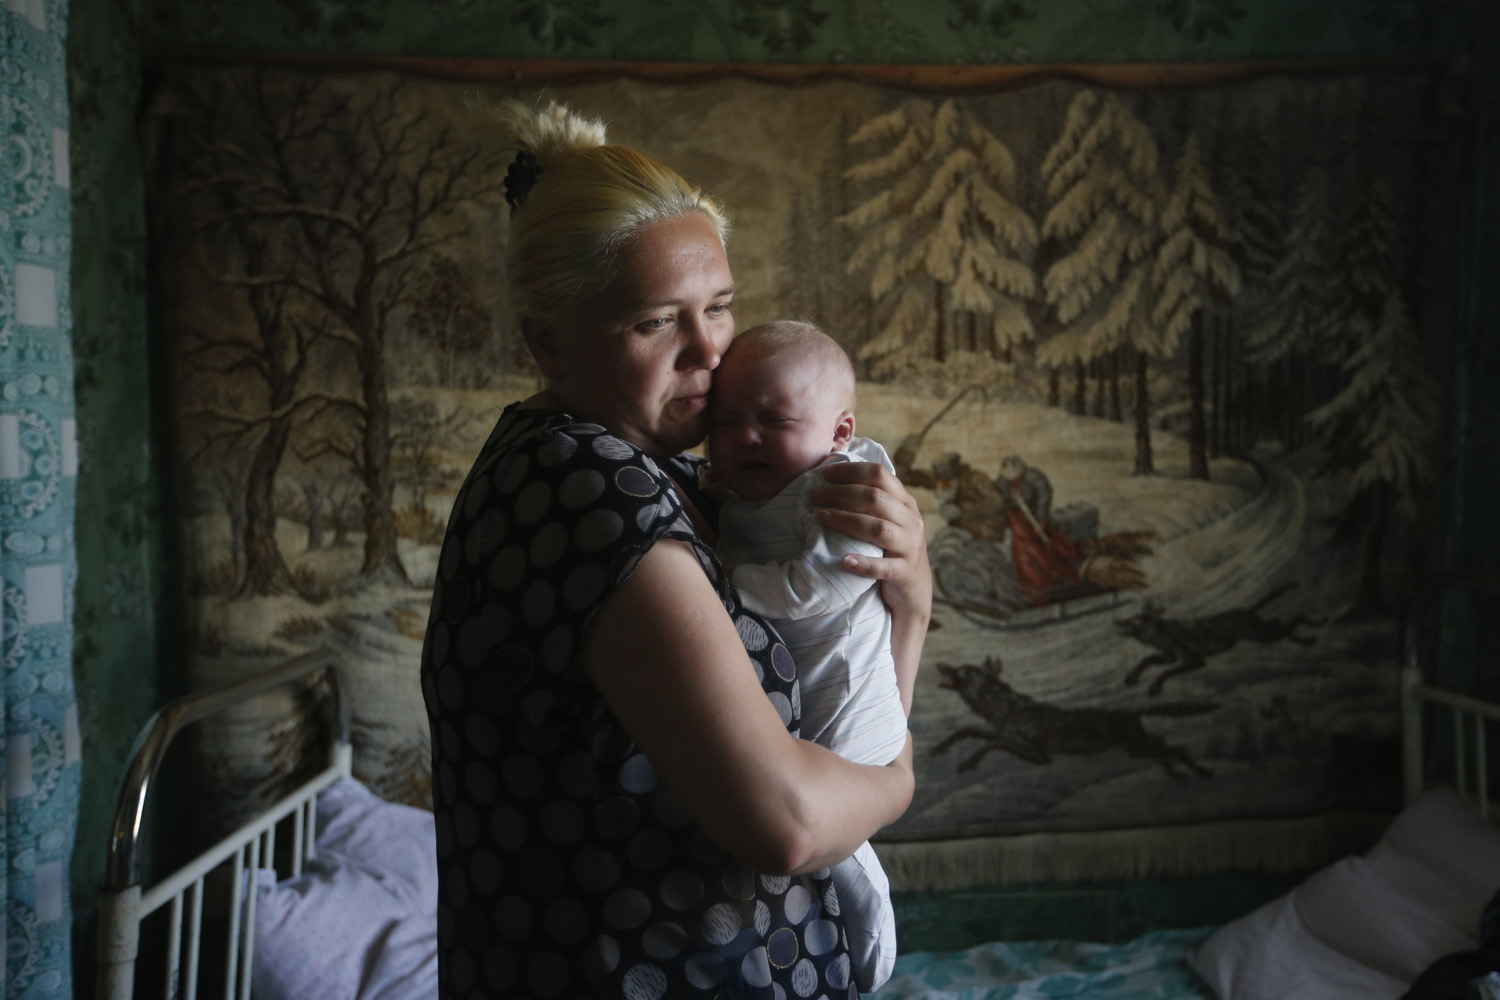 June 4, 2014. A mother and child who have fled from fighting in Slaviansk, stand in their temporary accommodation in the town of Nizhnaya Krinka in eastern Ukraine.